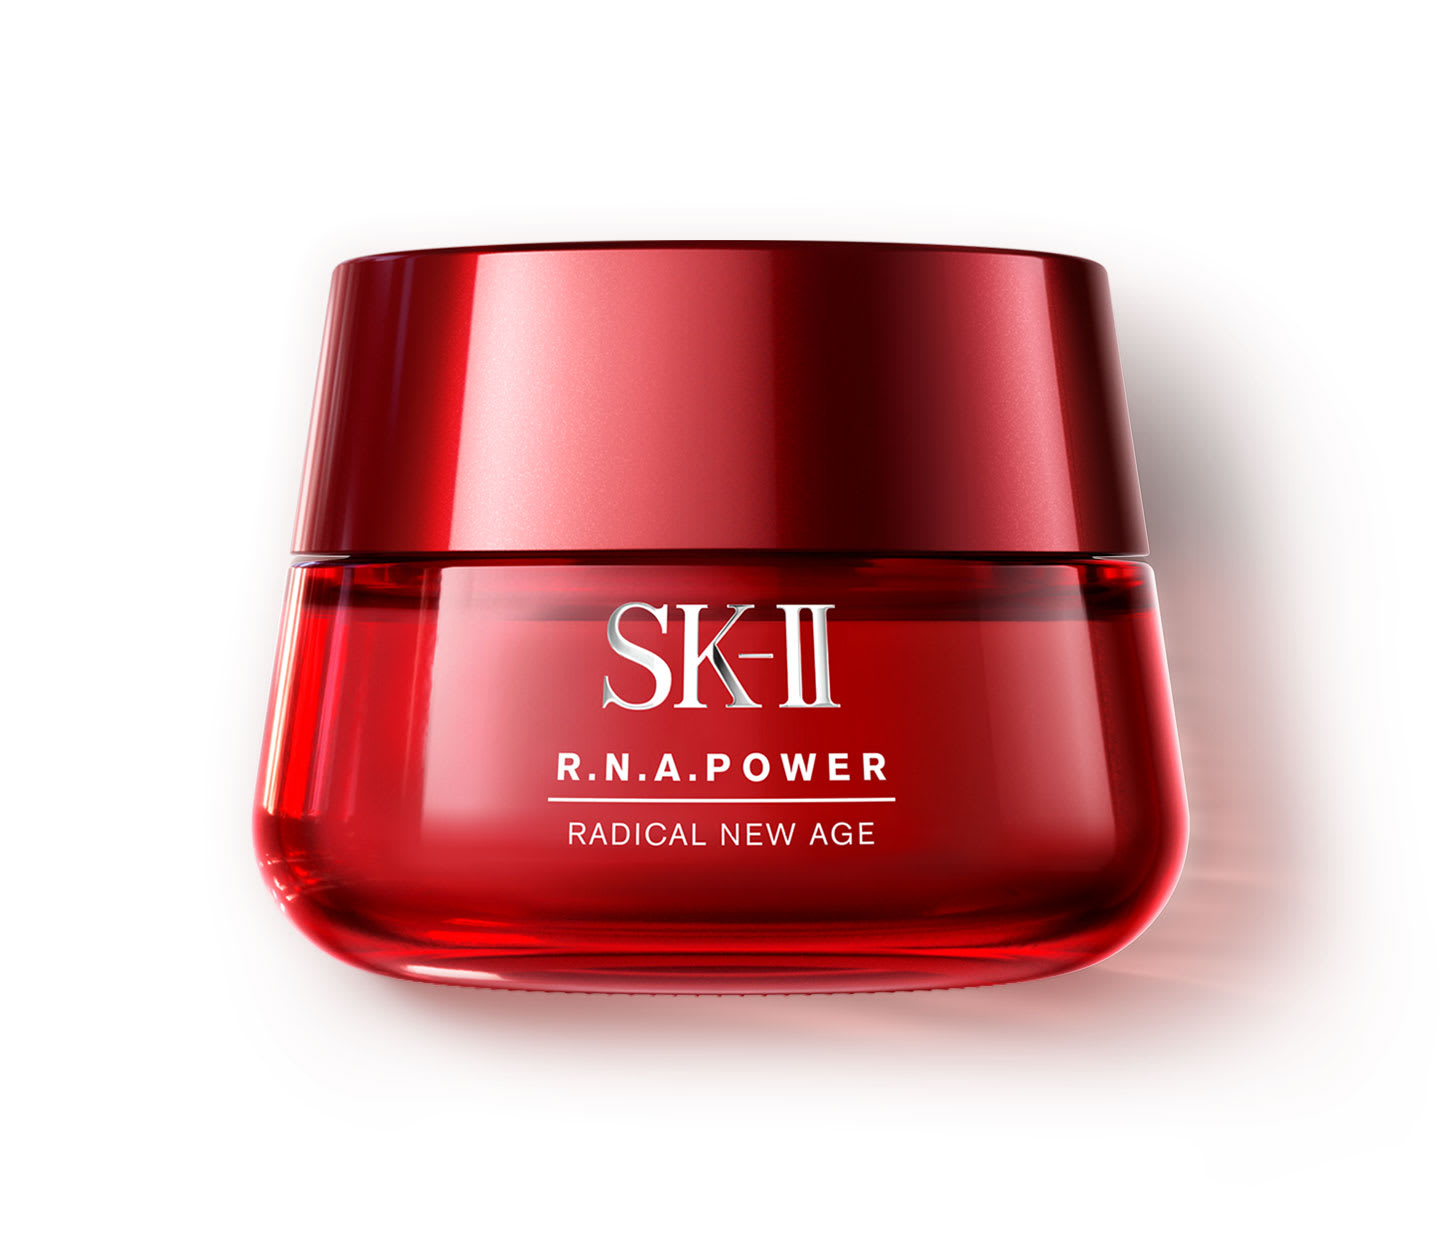 SK-II R.N.A. Power Radical New Age